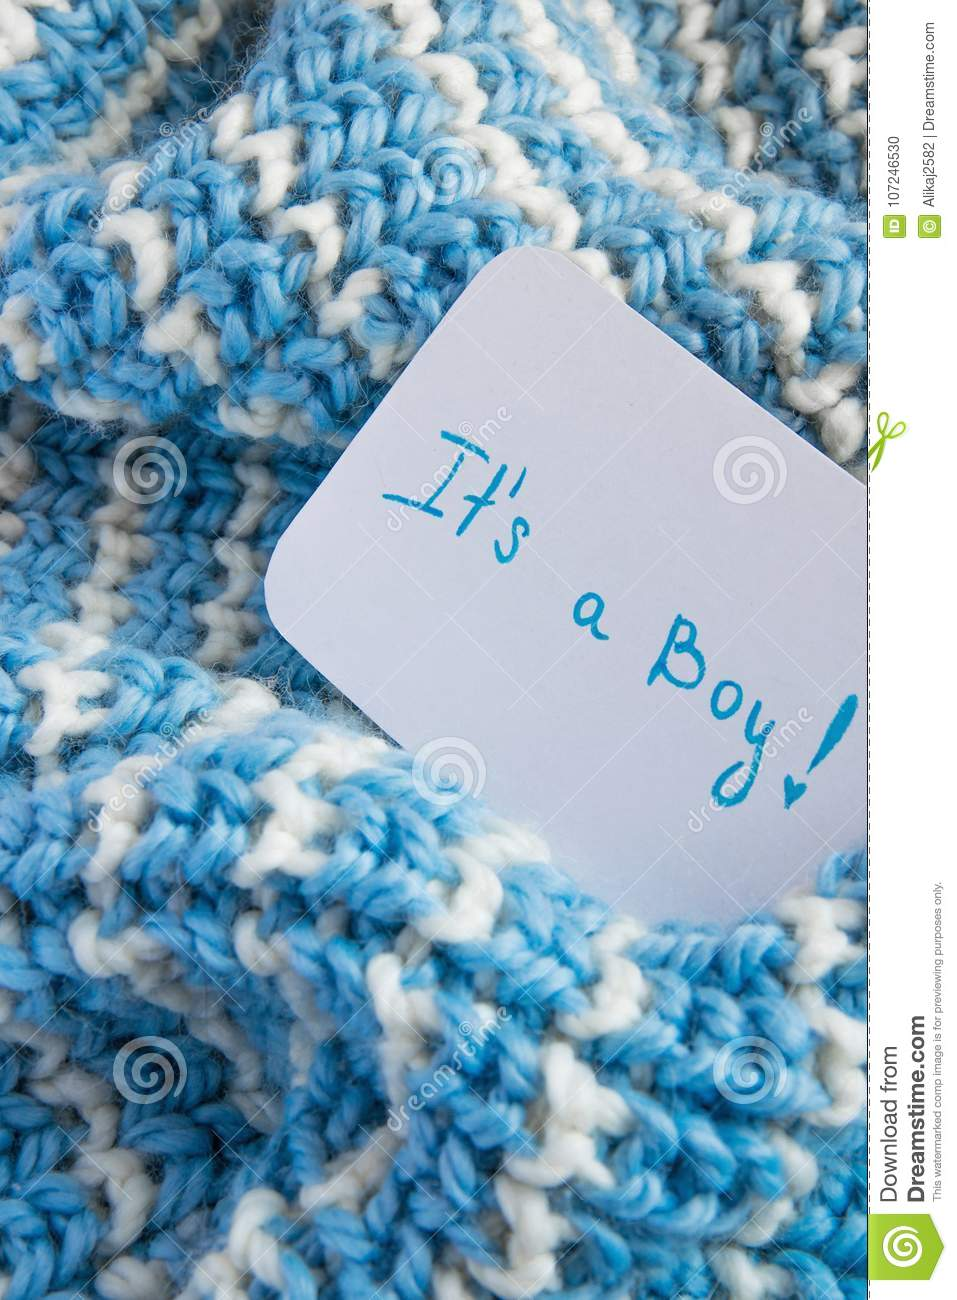 Baby shower `It`s a boy`, announcement card on cozy woolen blue blanket and space for text. New arrival in the family